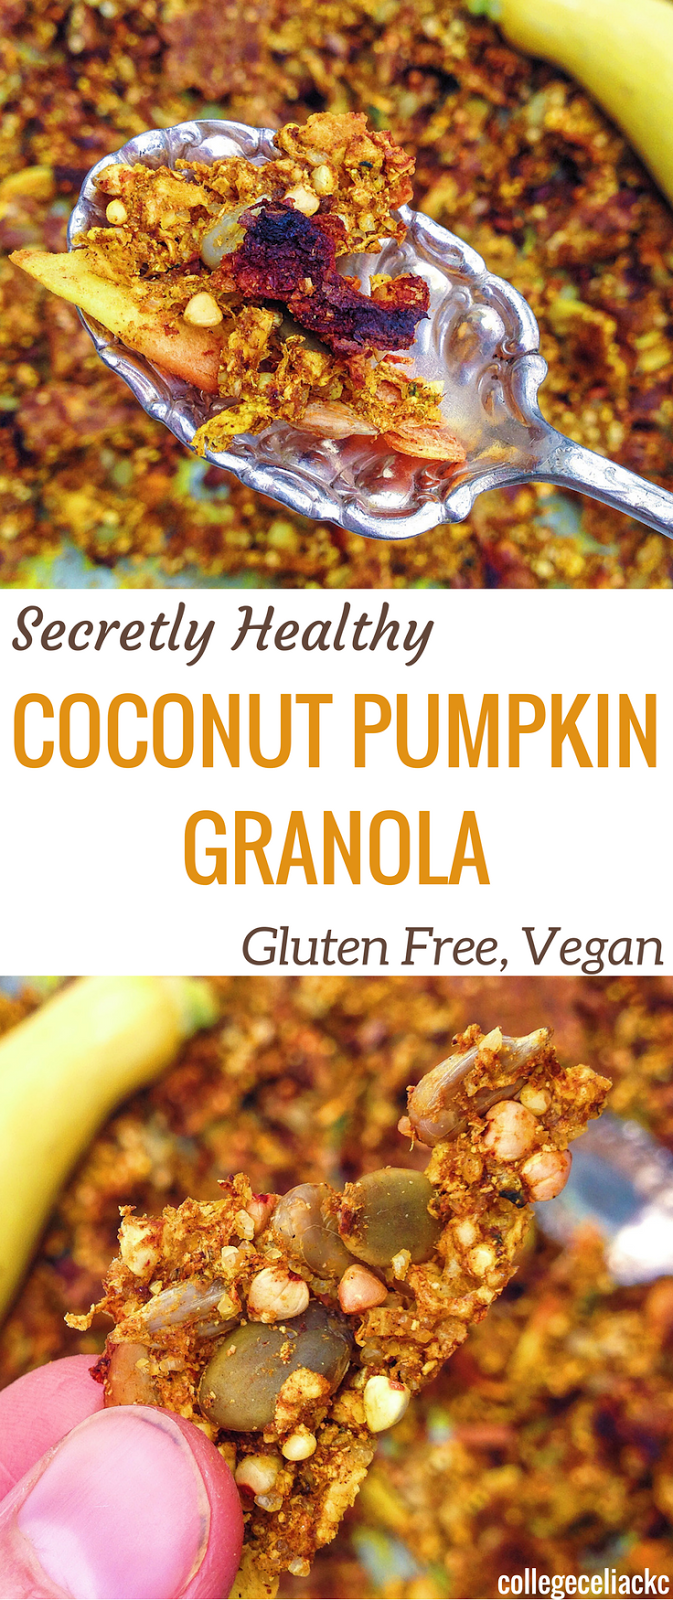 Secretly Healthy Coconut Pumpkin Granola (Gluten Free, Vegan)